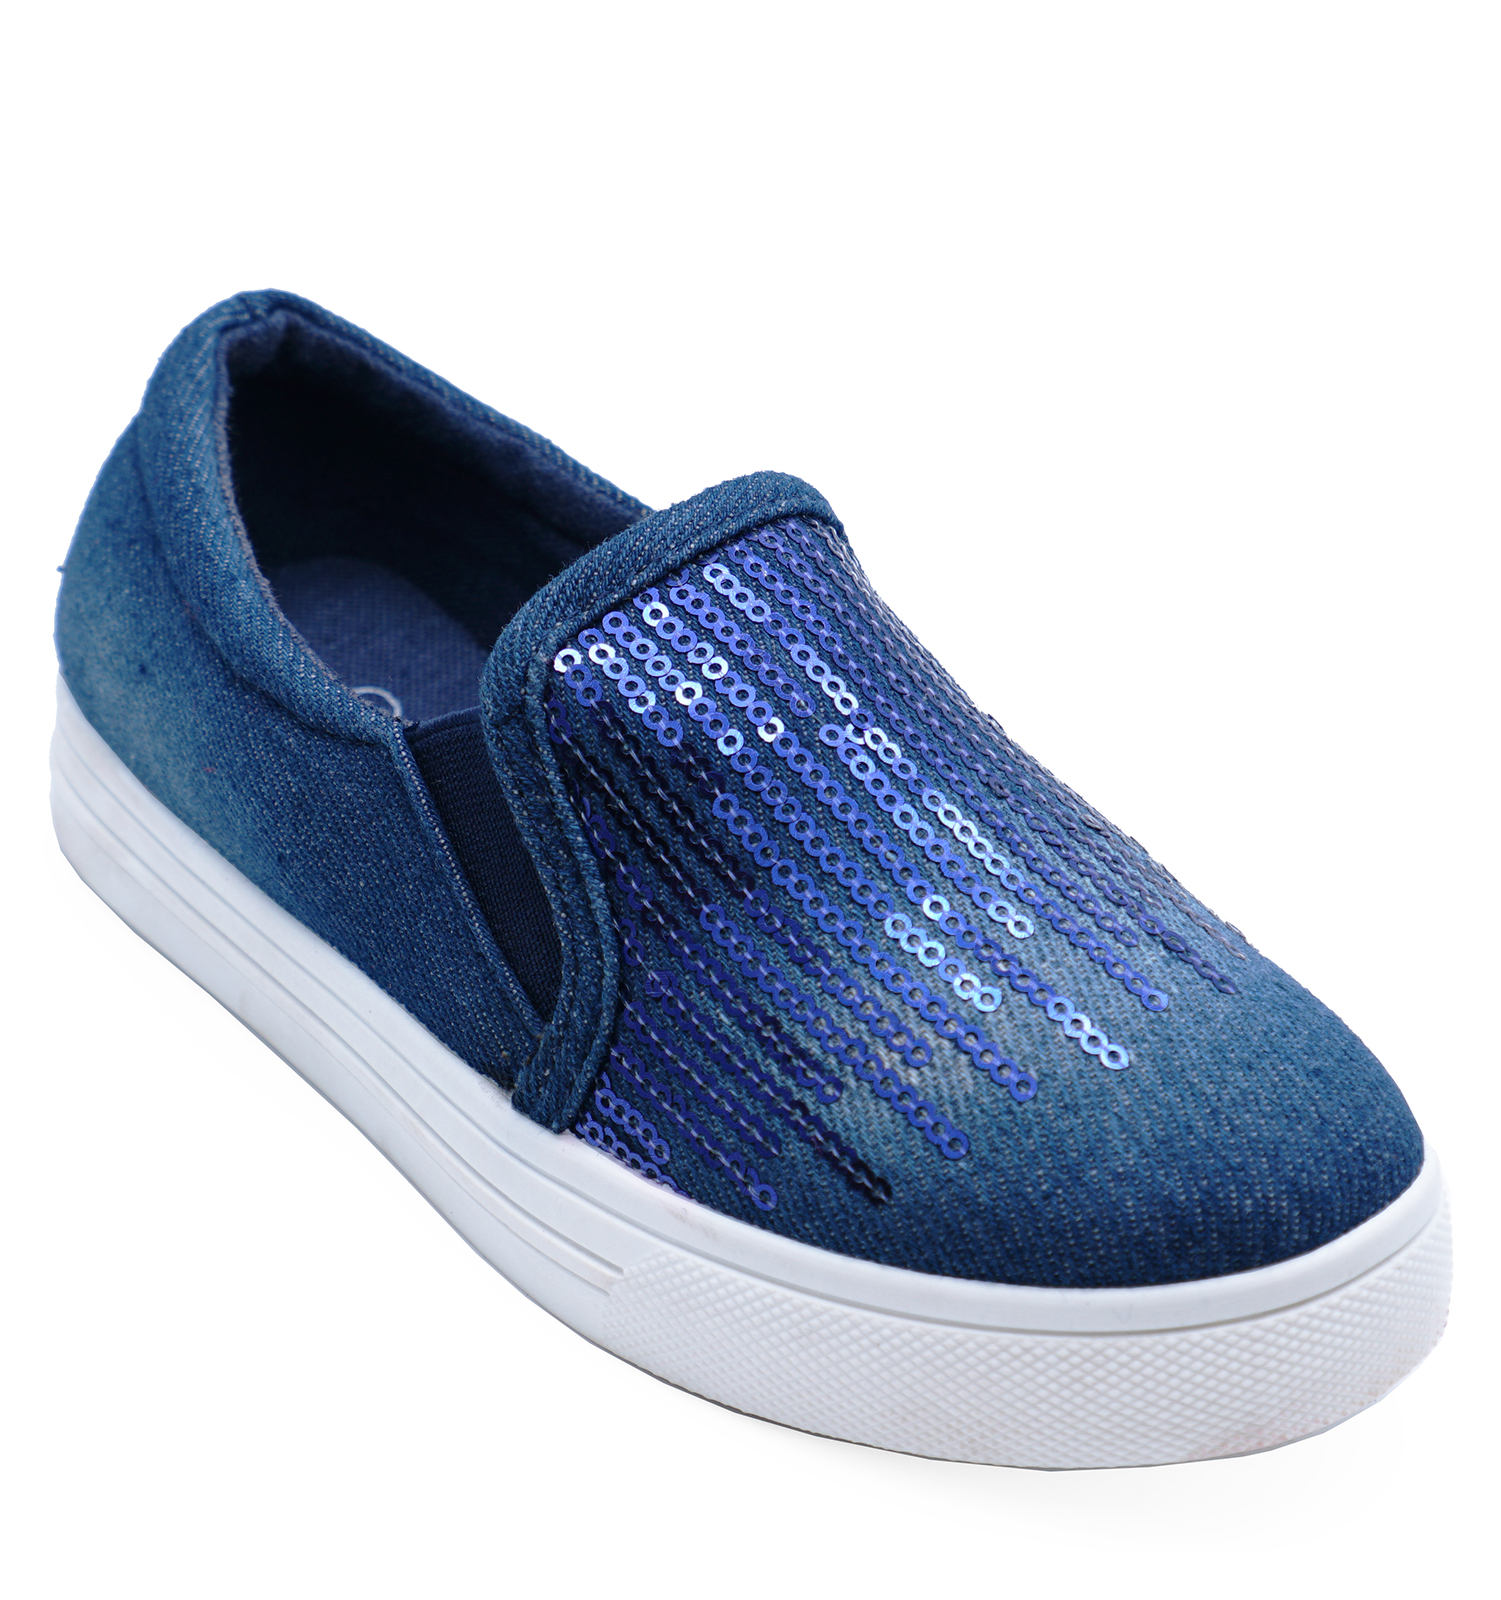 CHILDRENS-KIDS-GIRLS-DENIM-SLIP-ON-CASUAL-SHOES-TRAINERS-DANCE-PUMPS-SIZES-8-1 thumbnail 7